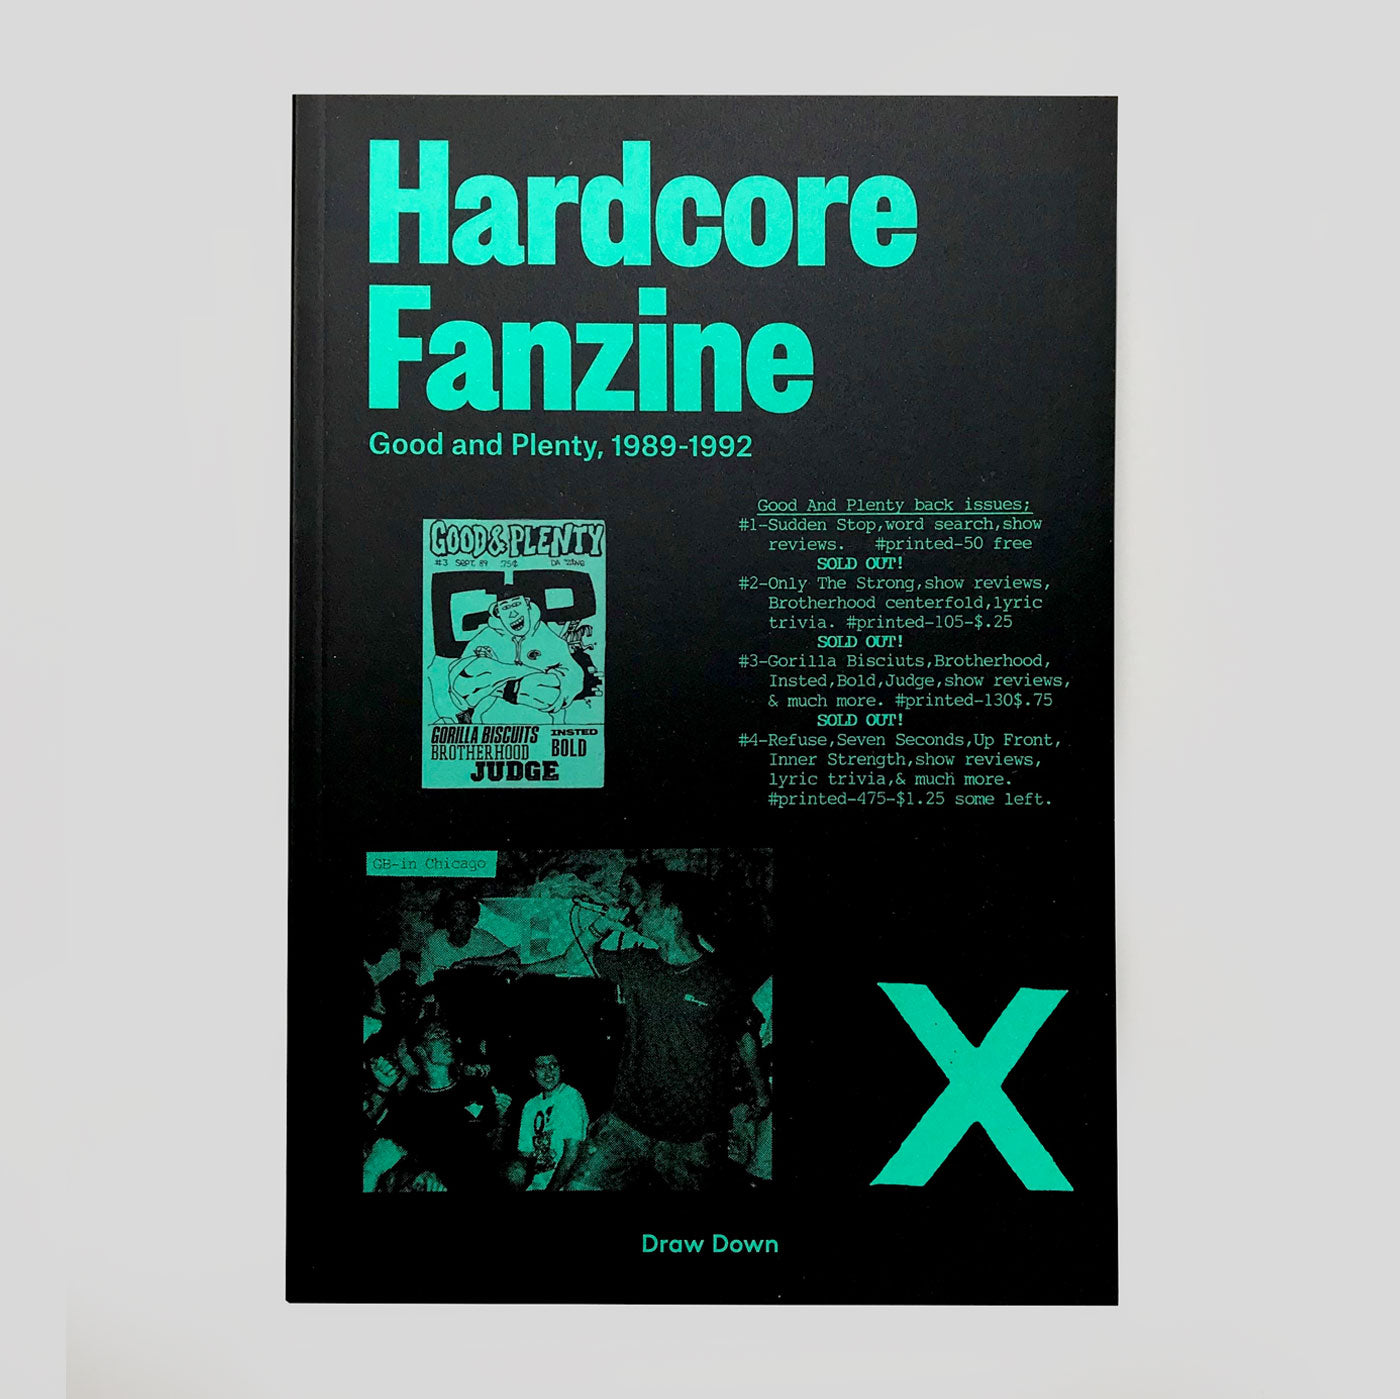 Hardcore Fanzine: Good & Plenty, 1989-1992.